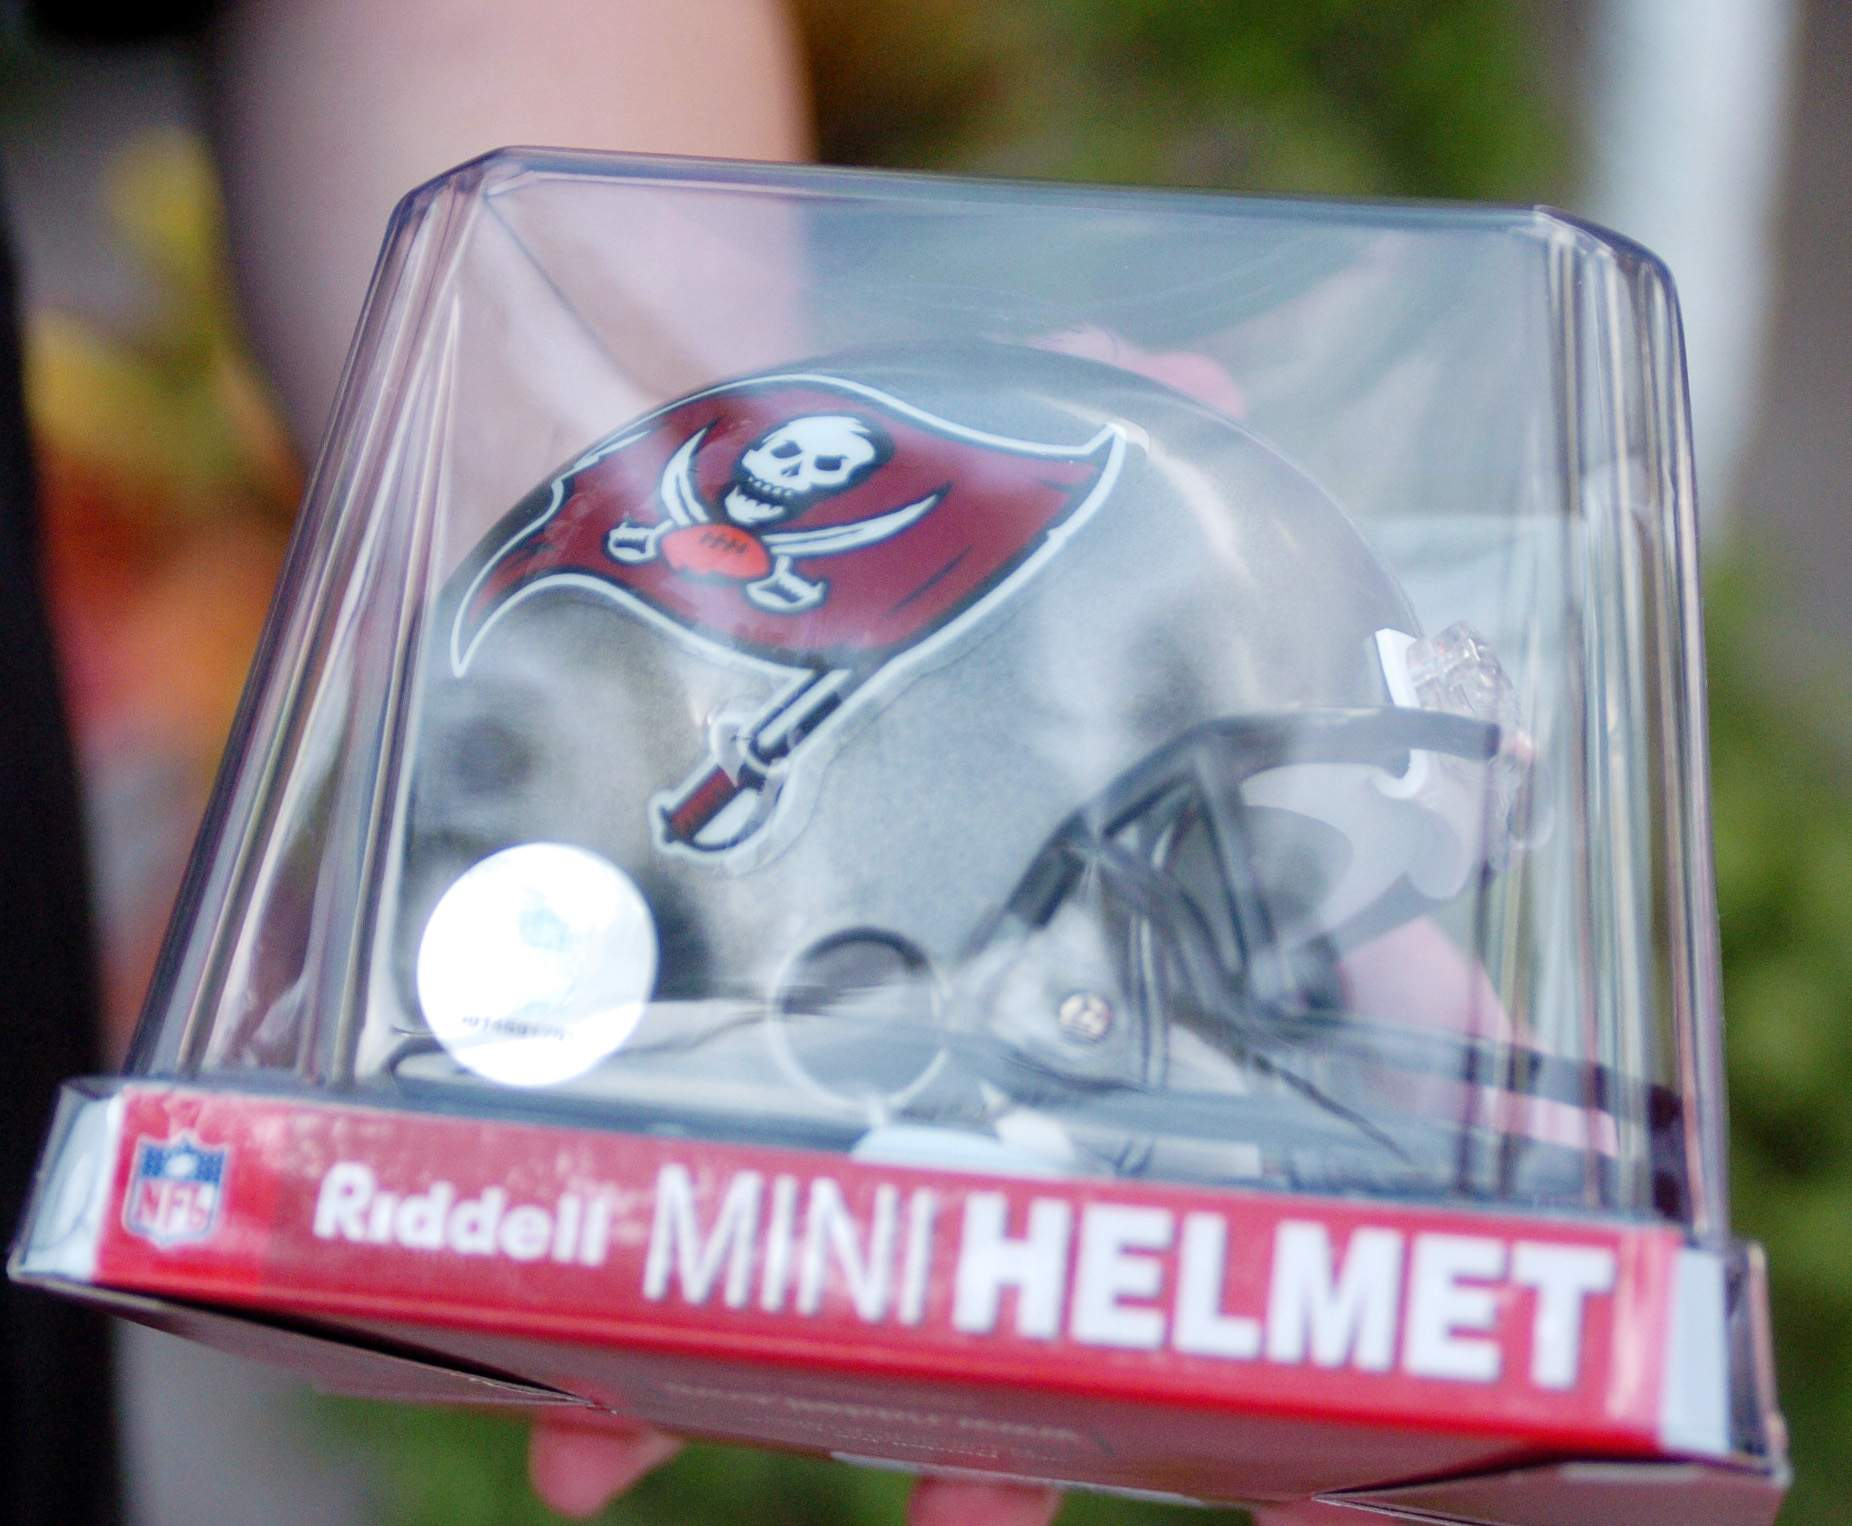 reputable site 76791 7acd9 Tampa Bay Bucs bring on Fanatics to sell their team merchandise